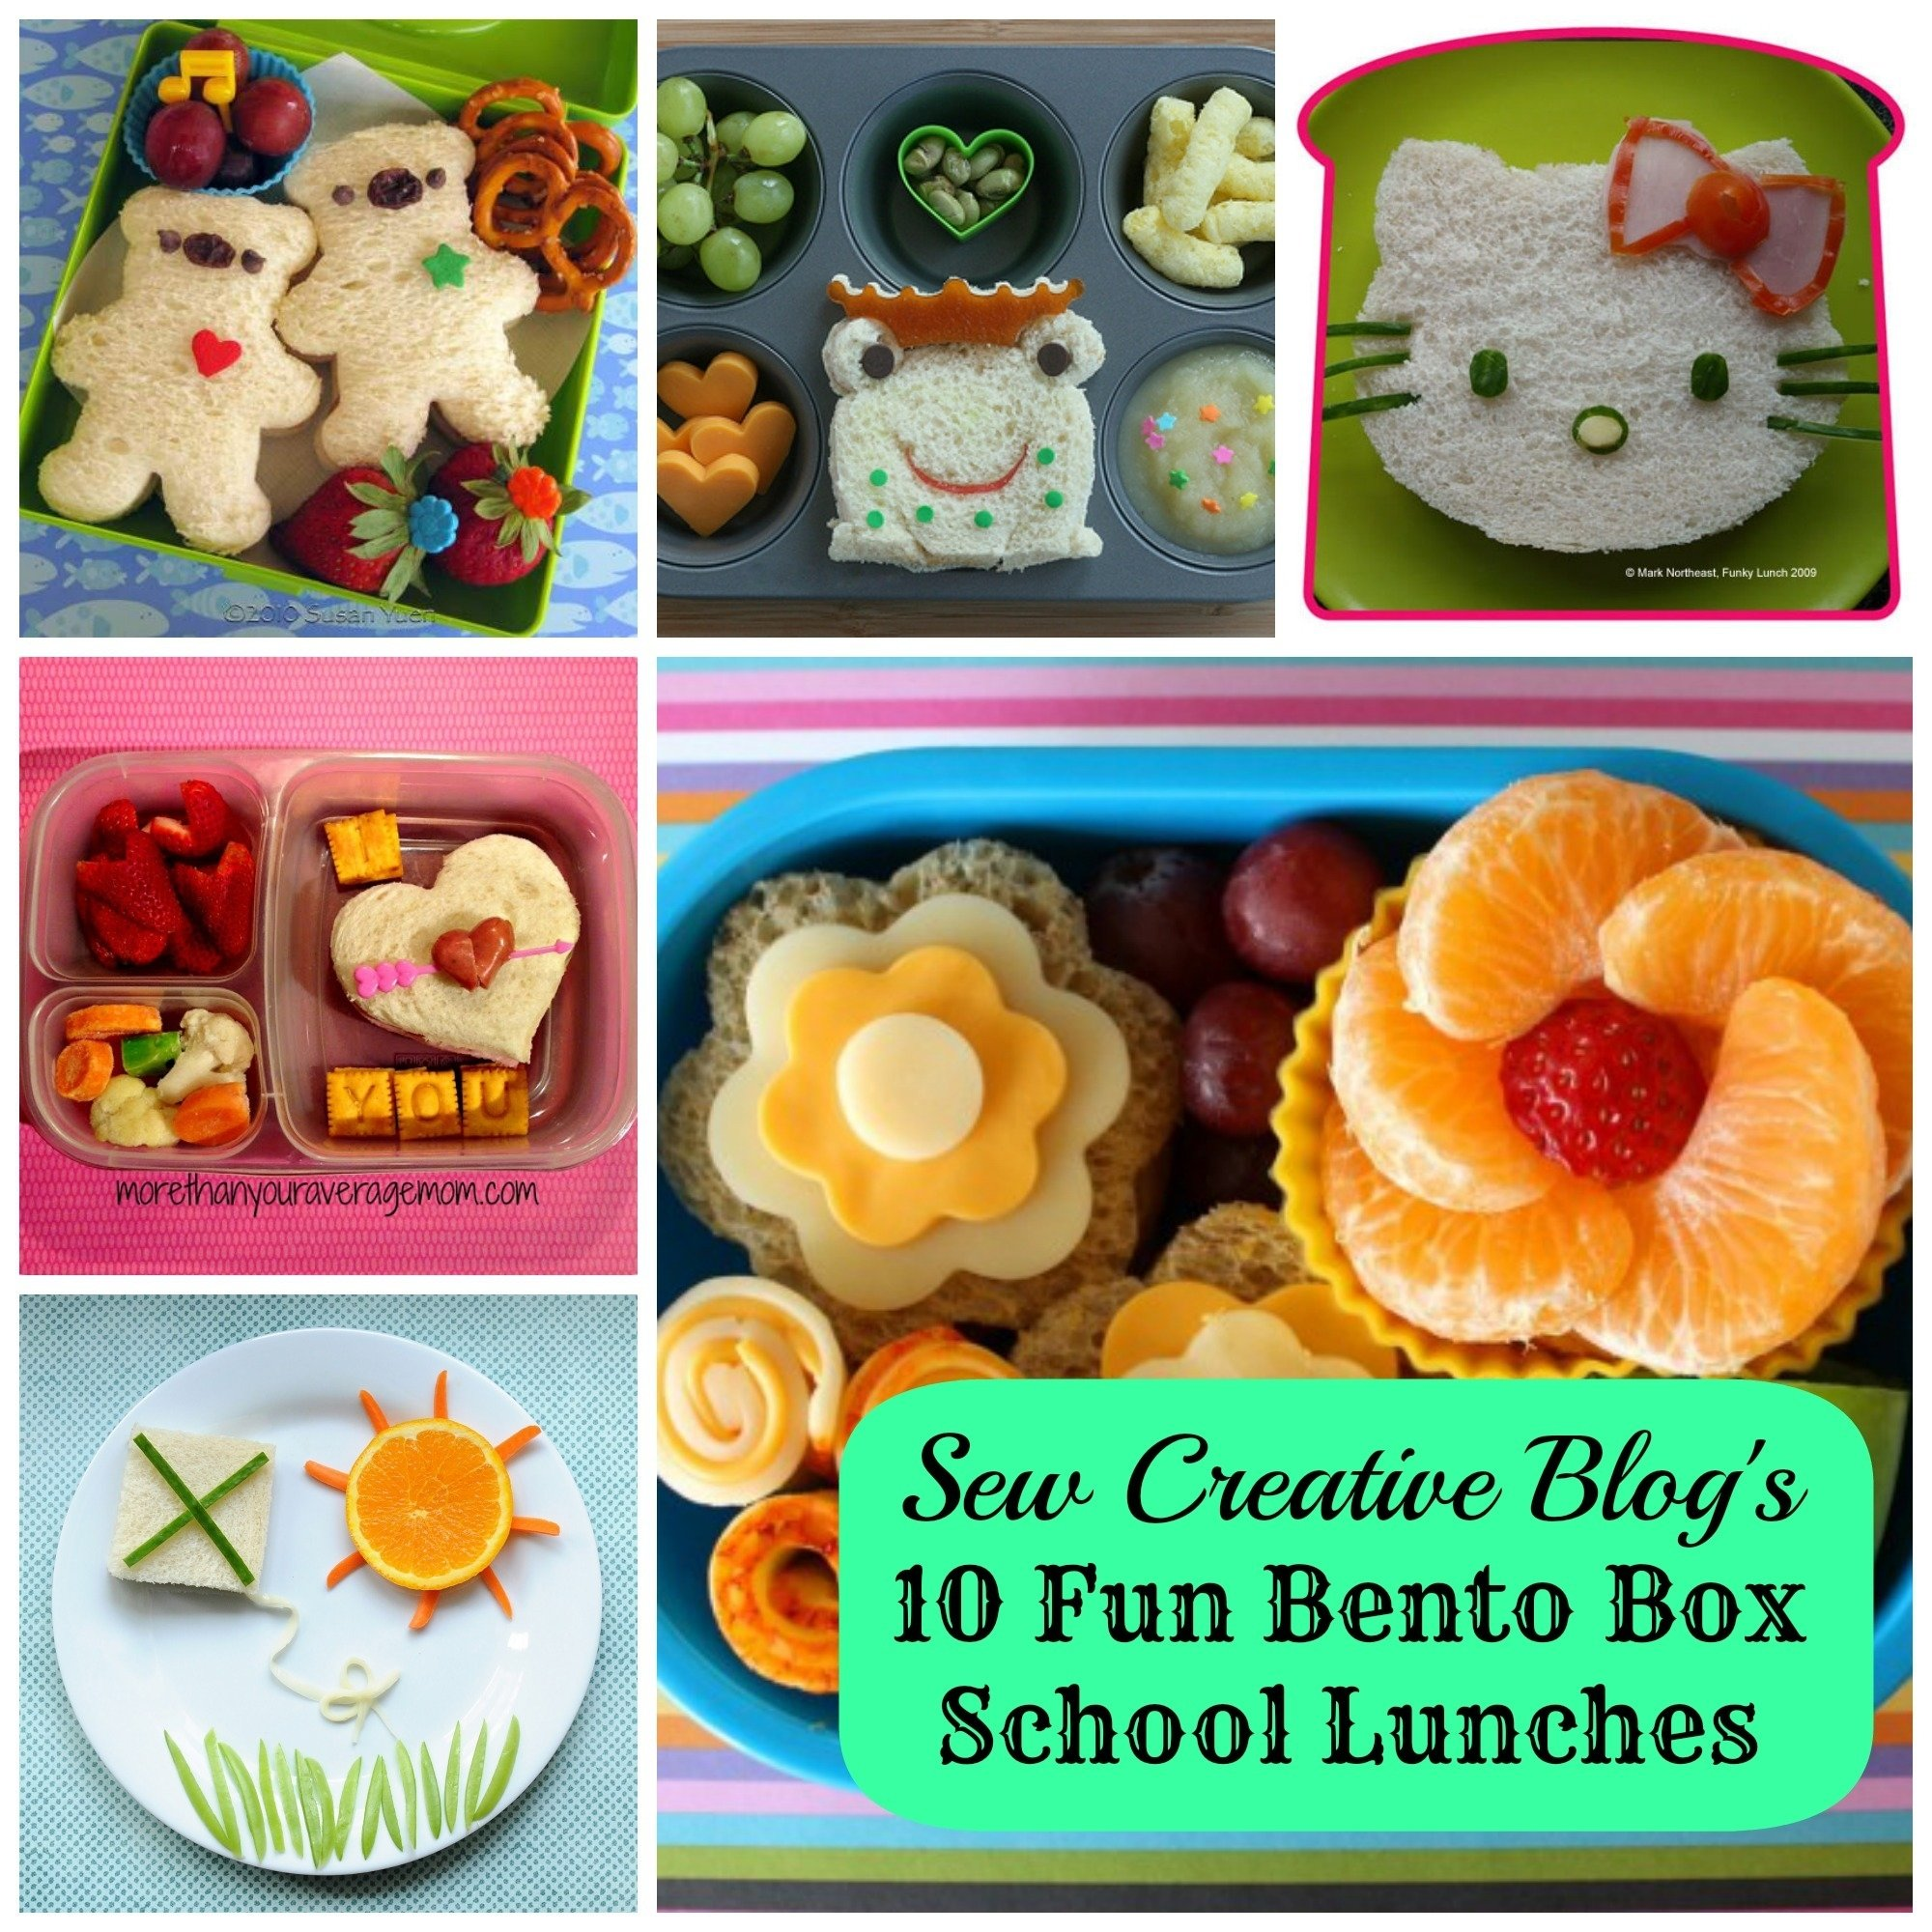 10 Cute Lunch Box Ideas For Picky Eaters weekly inspiration 10 fun bento box school lunches sew creative 5 2020